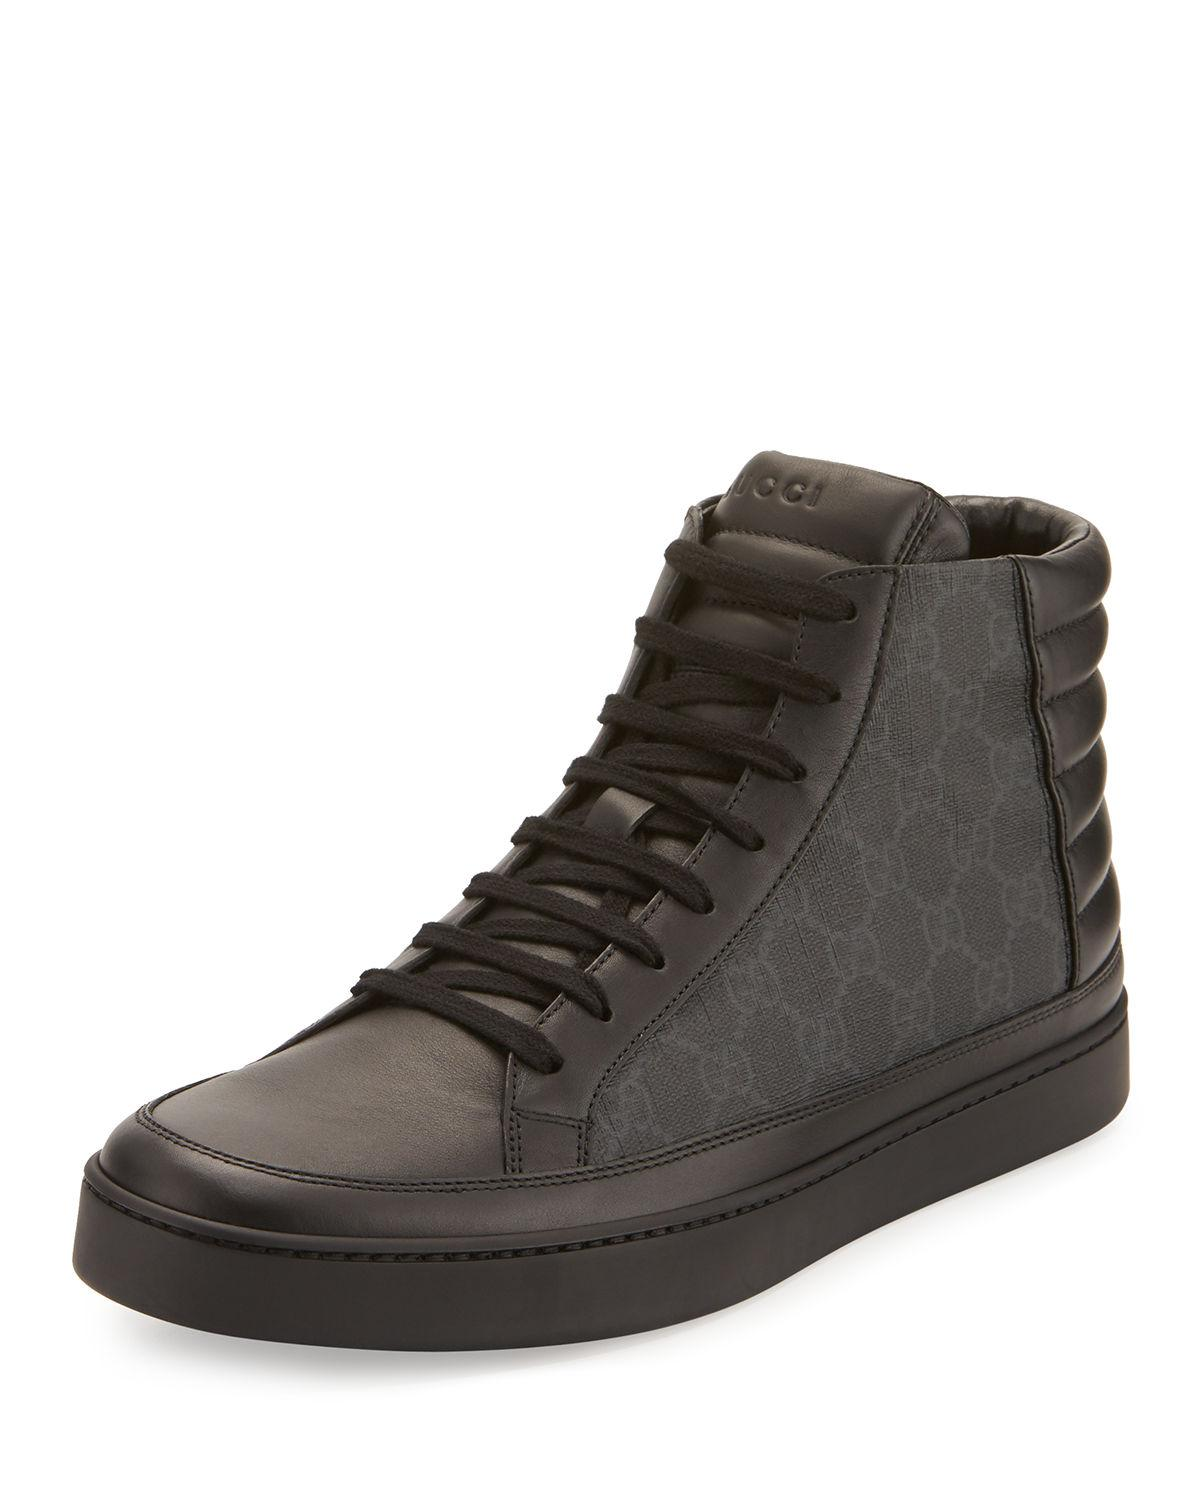 b9562200f Lyst - Gucci Men s Common Canvas   Leather High-top Sneakers in ...